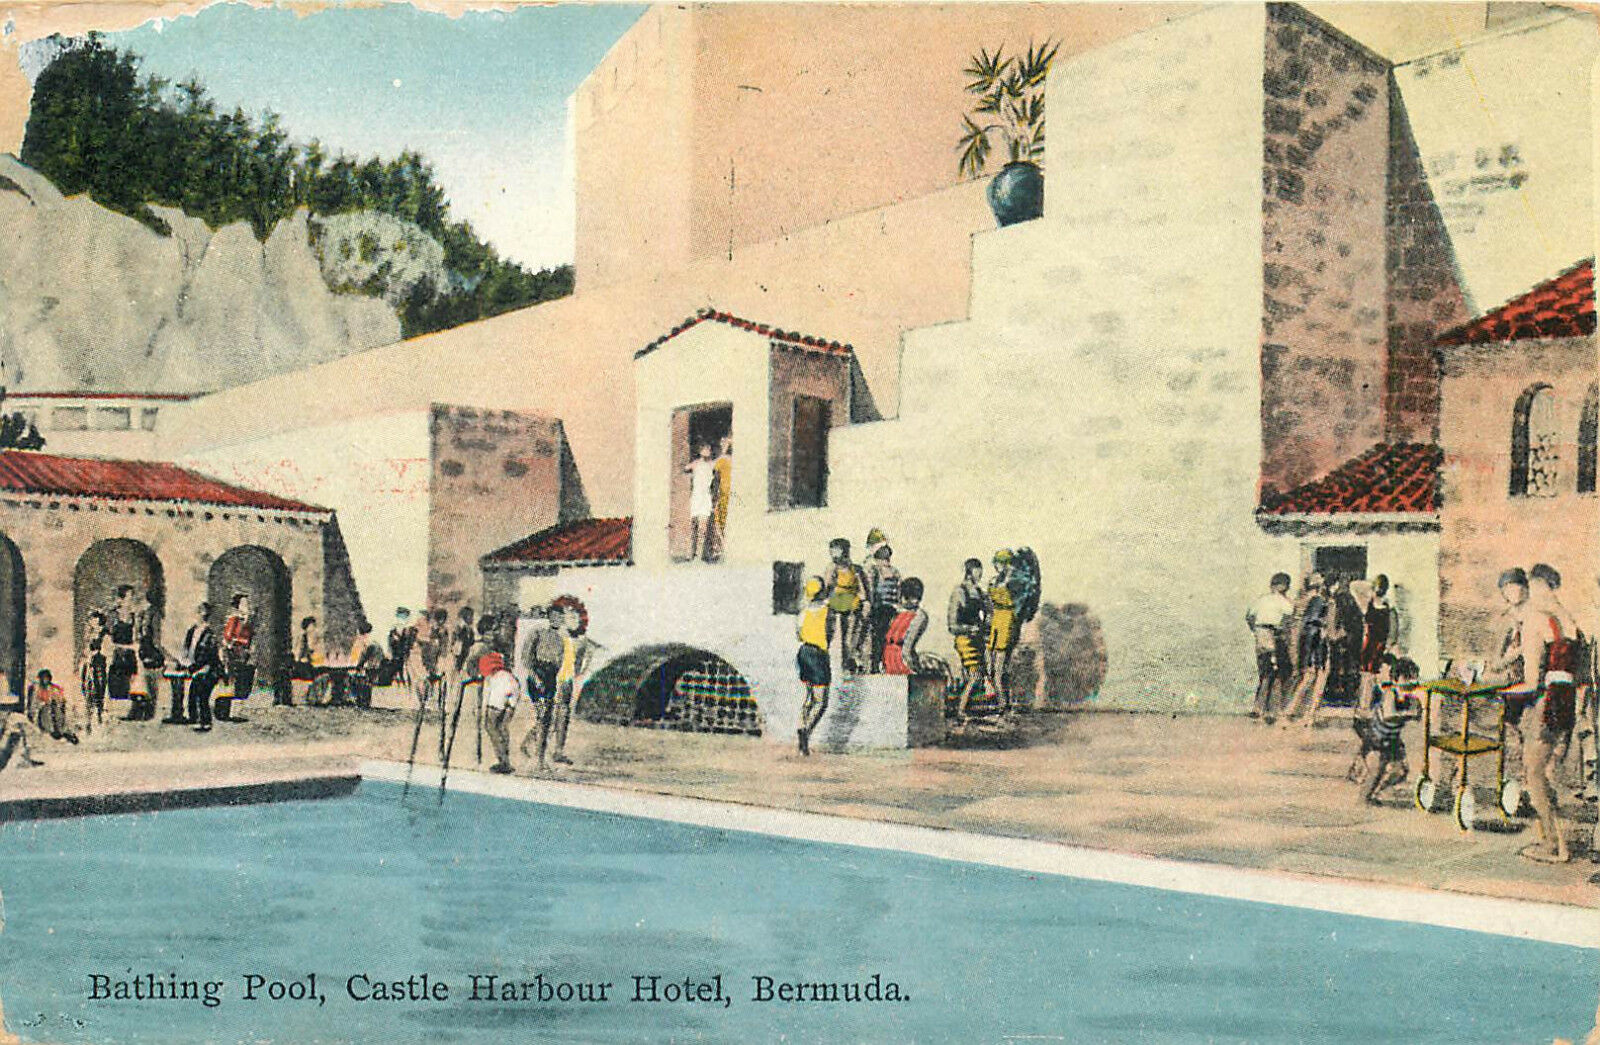 Bermuda Bathing Pool Castle Harbour Hotel Art Deco 1938 Postcard View 1 Of 2only Available